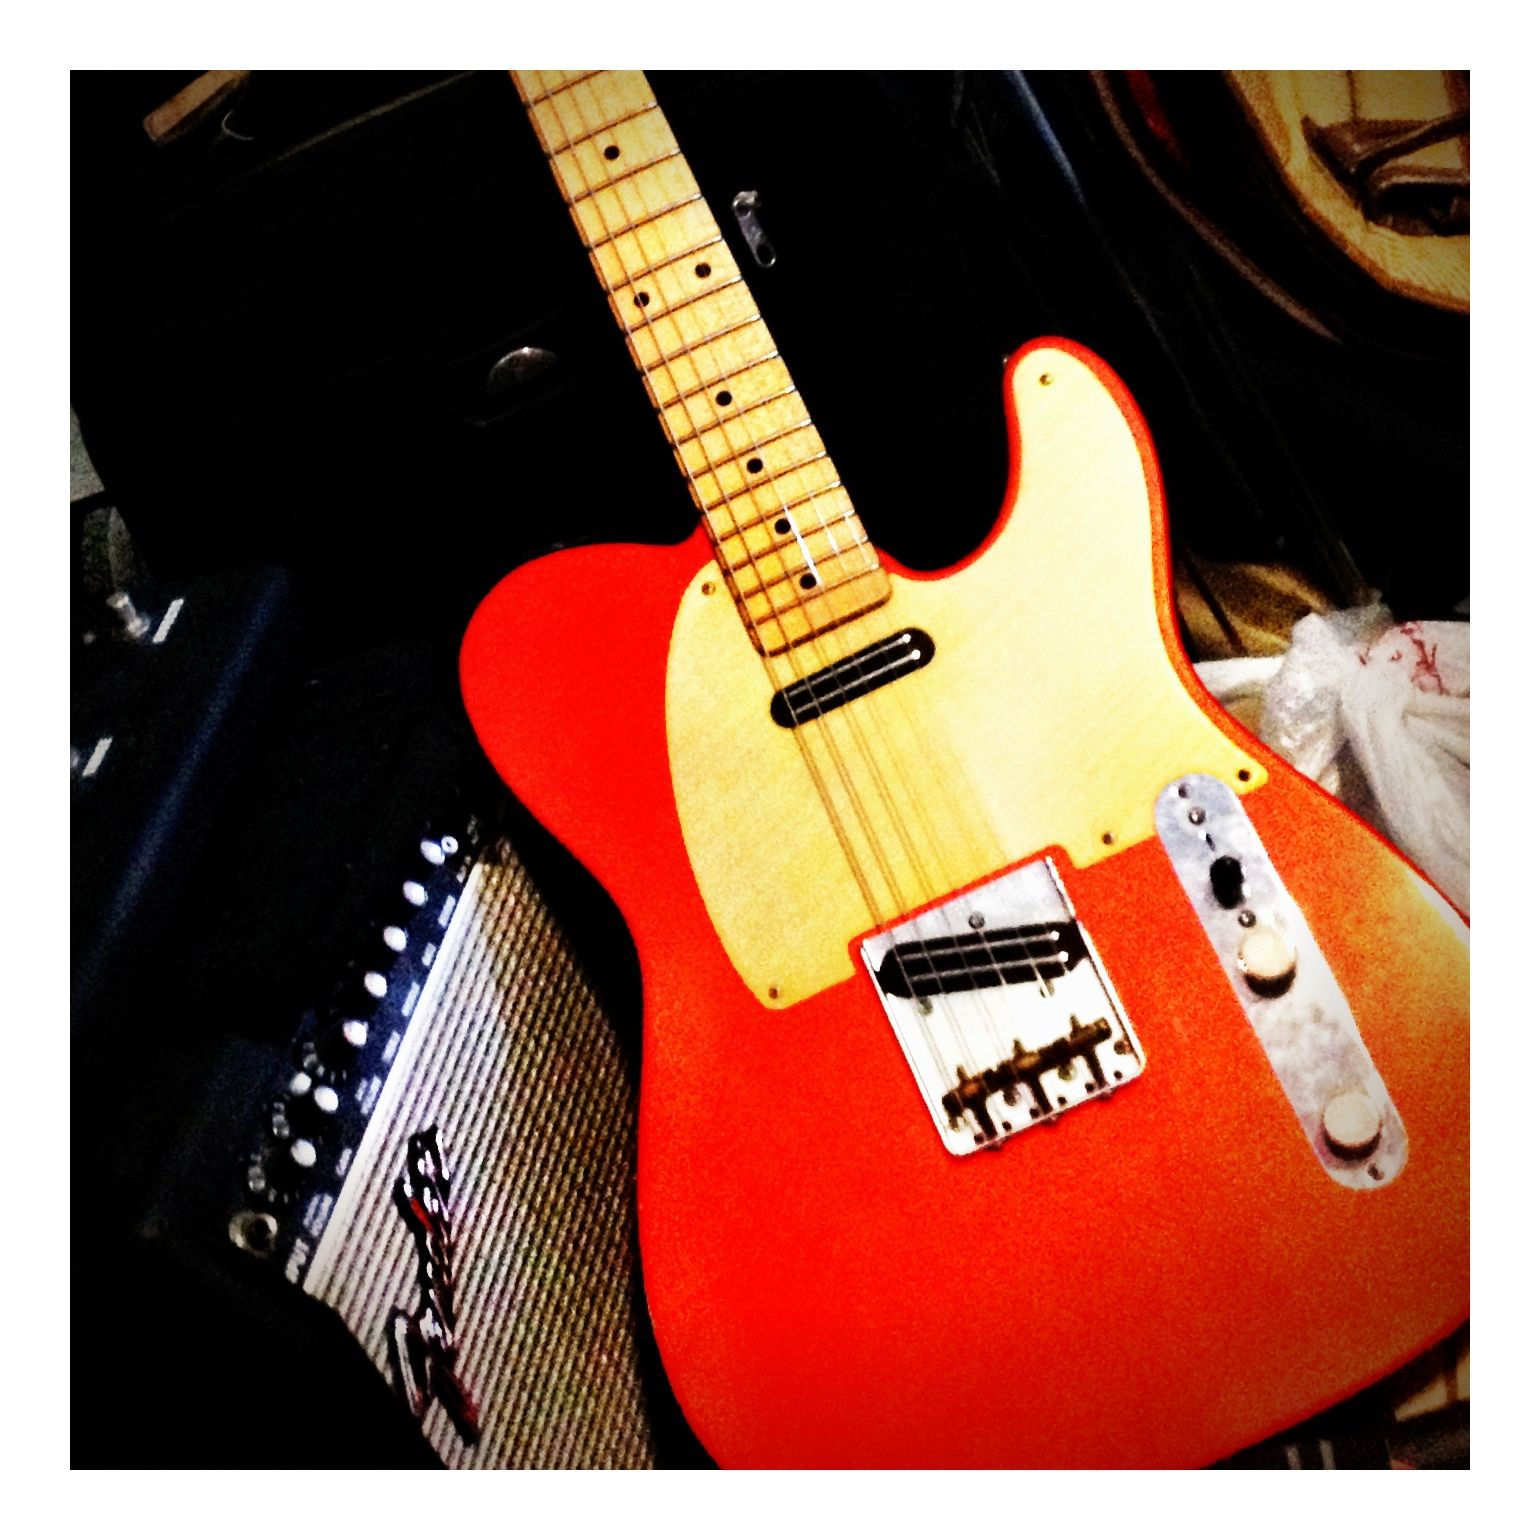 Fender Telecaster Joe Barden Wiring Schematic Starting Know About Nasville Diagram Power Custom Shop 50 S Mvplayer With Engineering Rh Pinterest Com